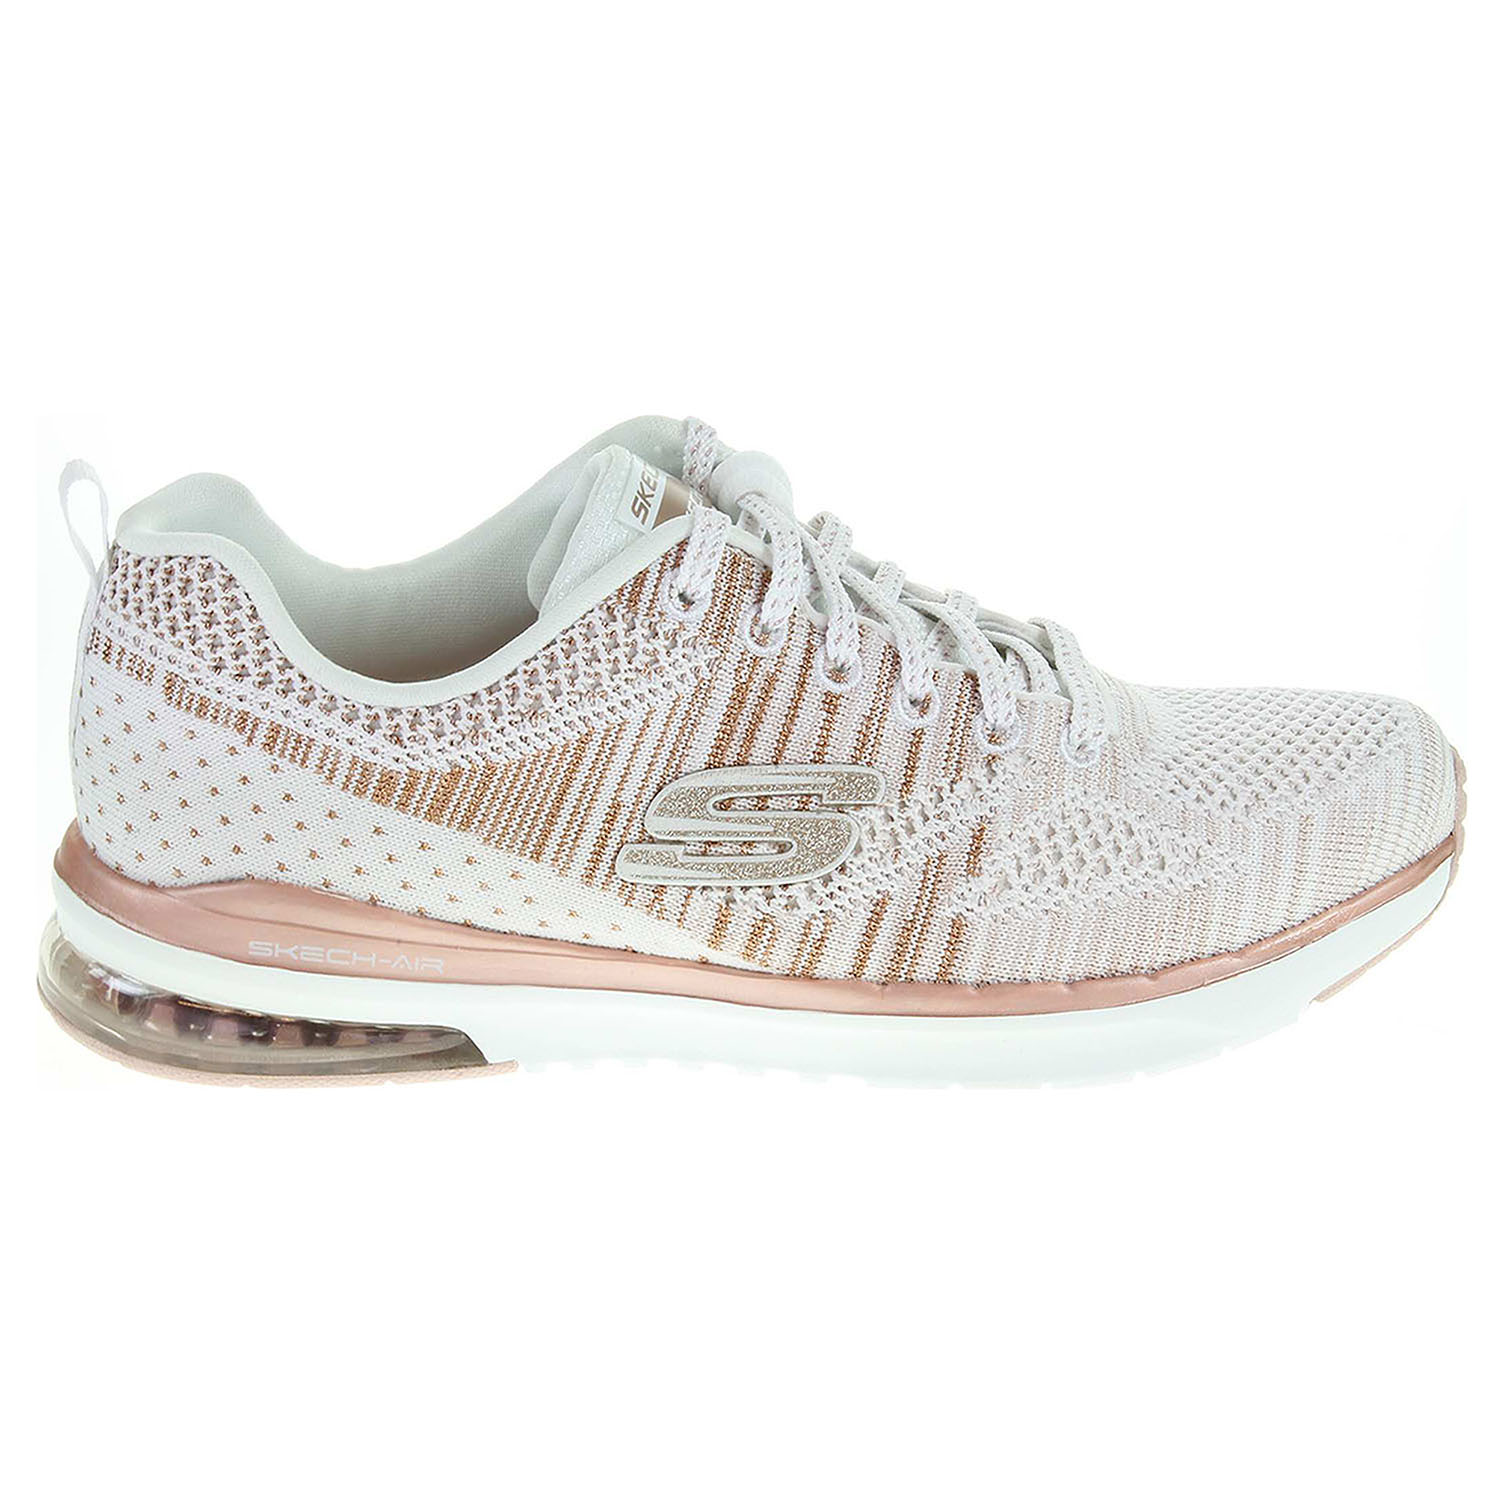 Skechers Skech-Air Infinity - Stand Out white rose gold 12114 WTRG 37